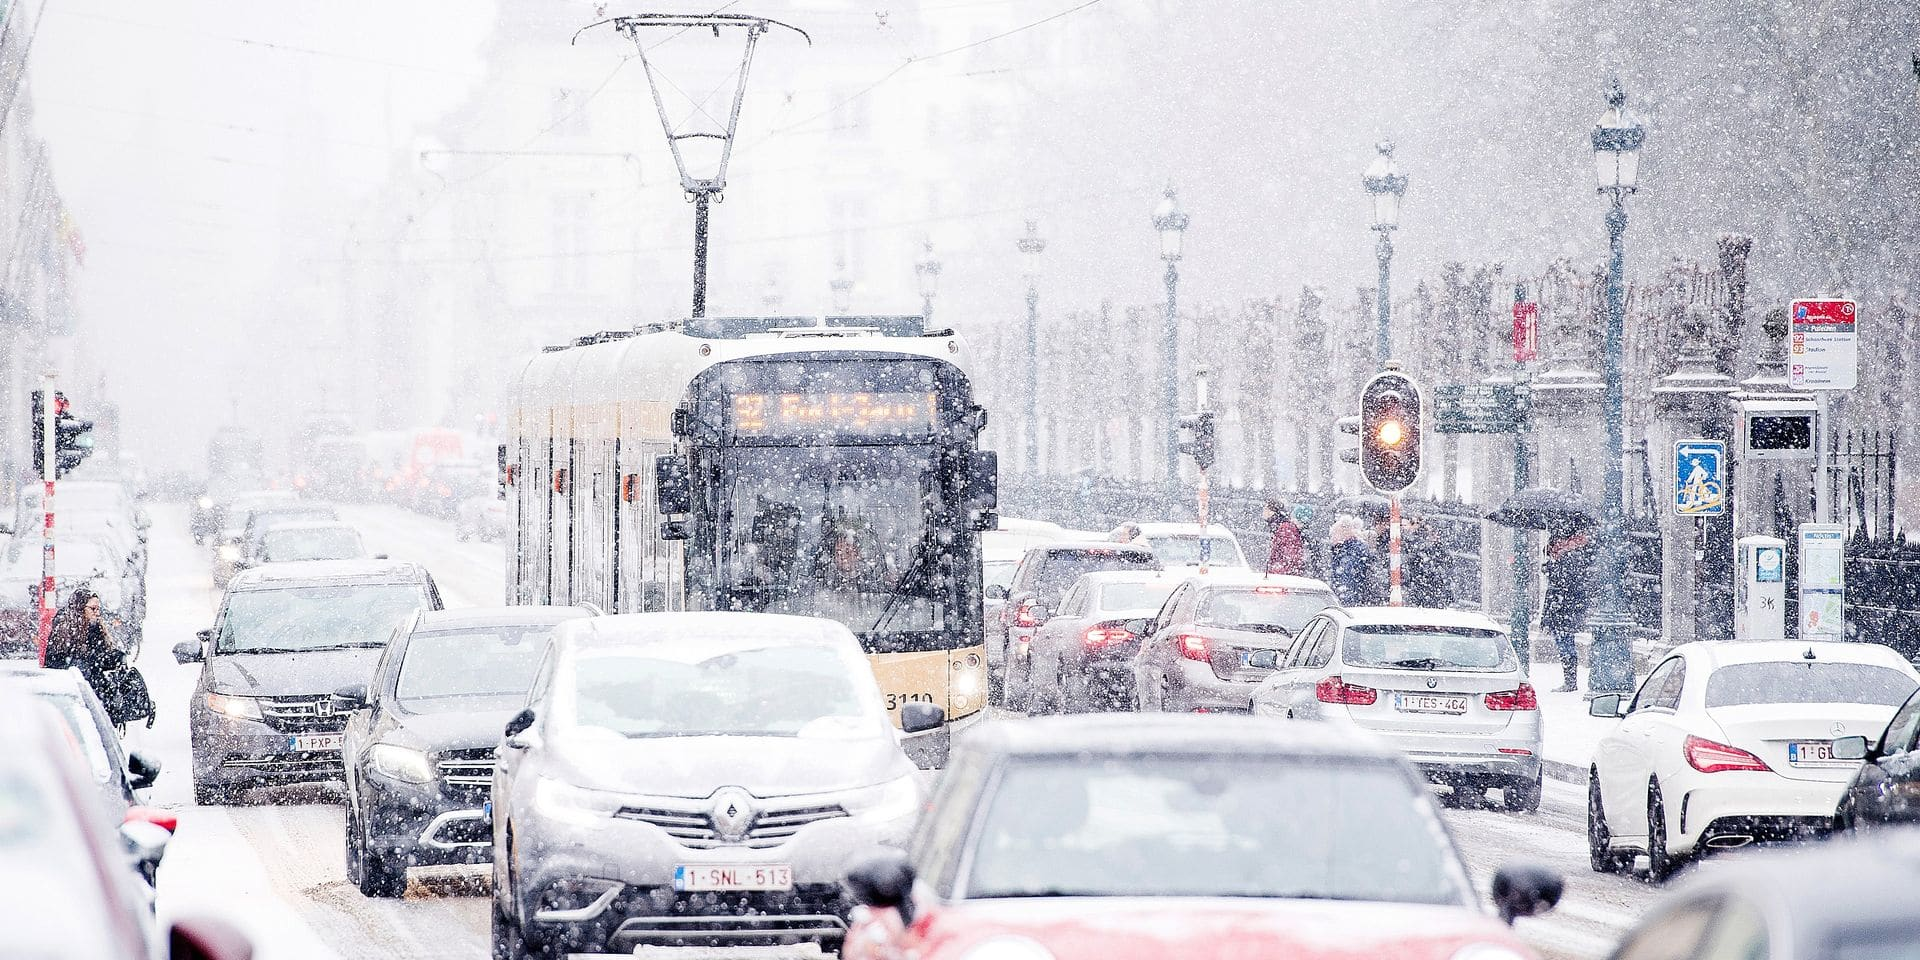 Illustration picture shows snow in the center of Brussels, Friday 02 March 2018. A snow front is making its way across Belgium. The Royal Meteorological Institute has issued a code orange weather warning. Slippery conditions are expected on roads across the country this afternoon. BELGA PHOTO JASPER JACOBS